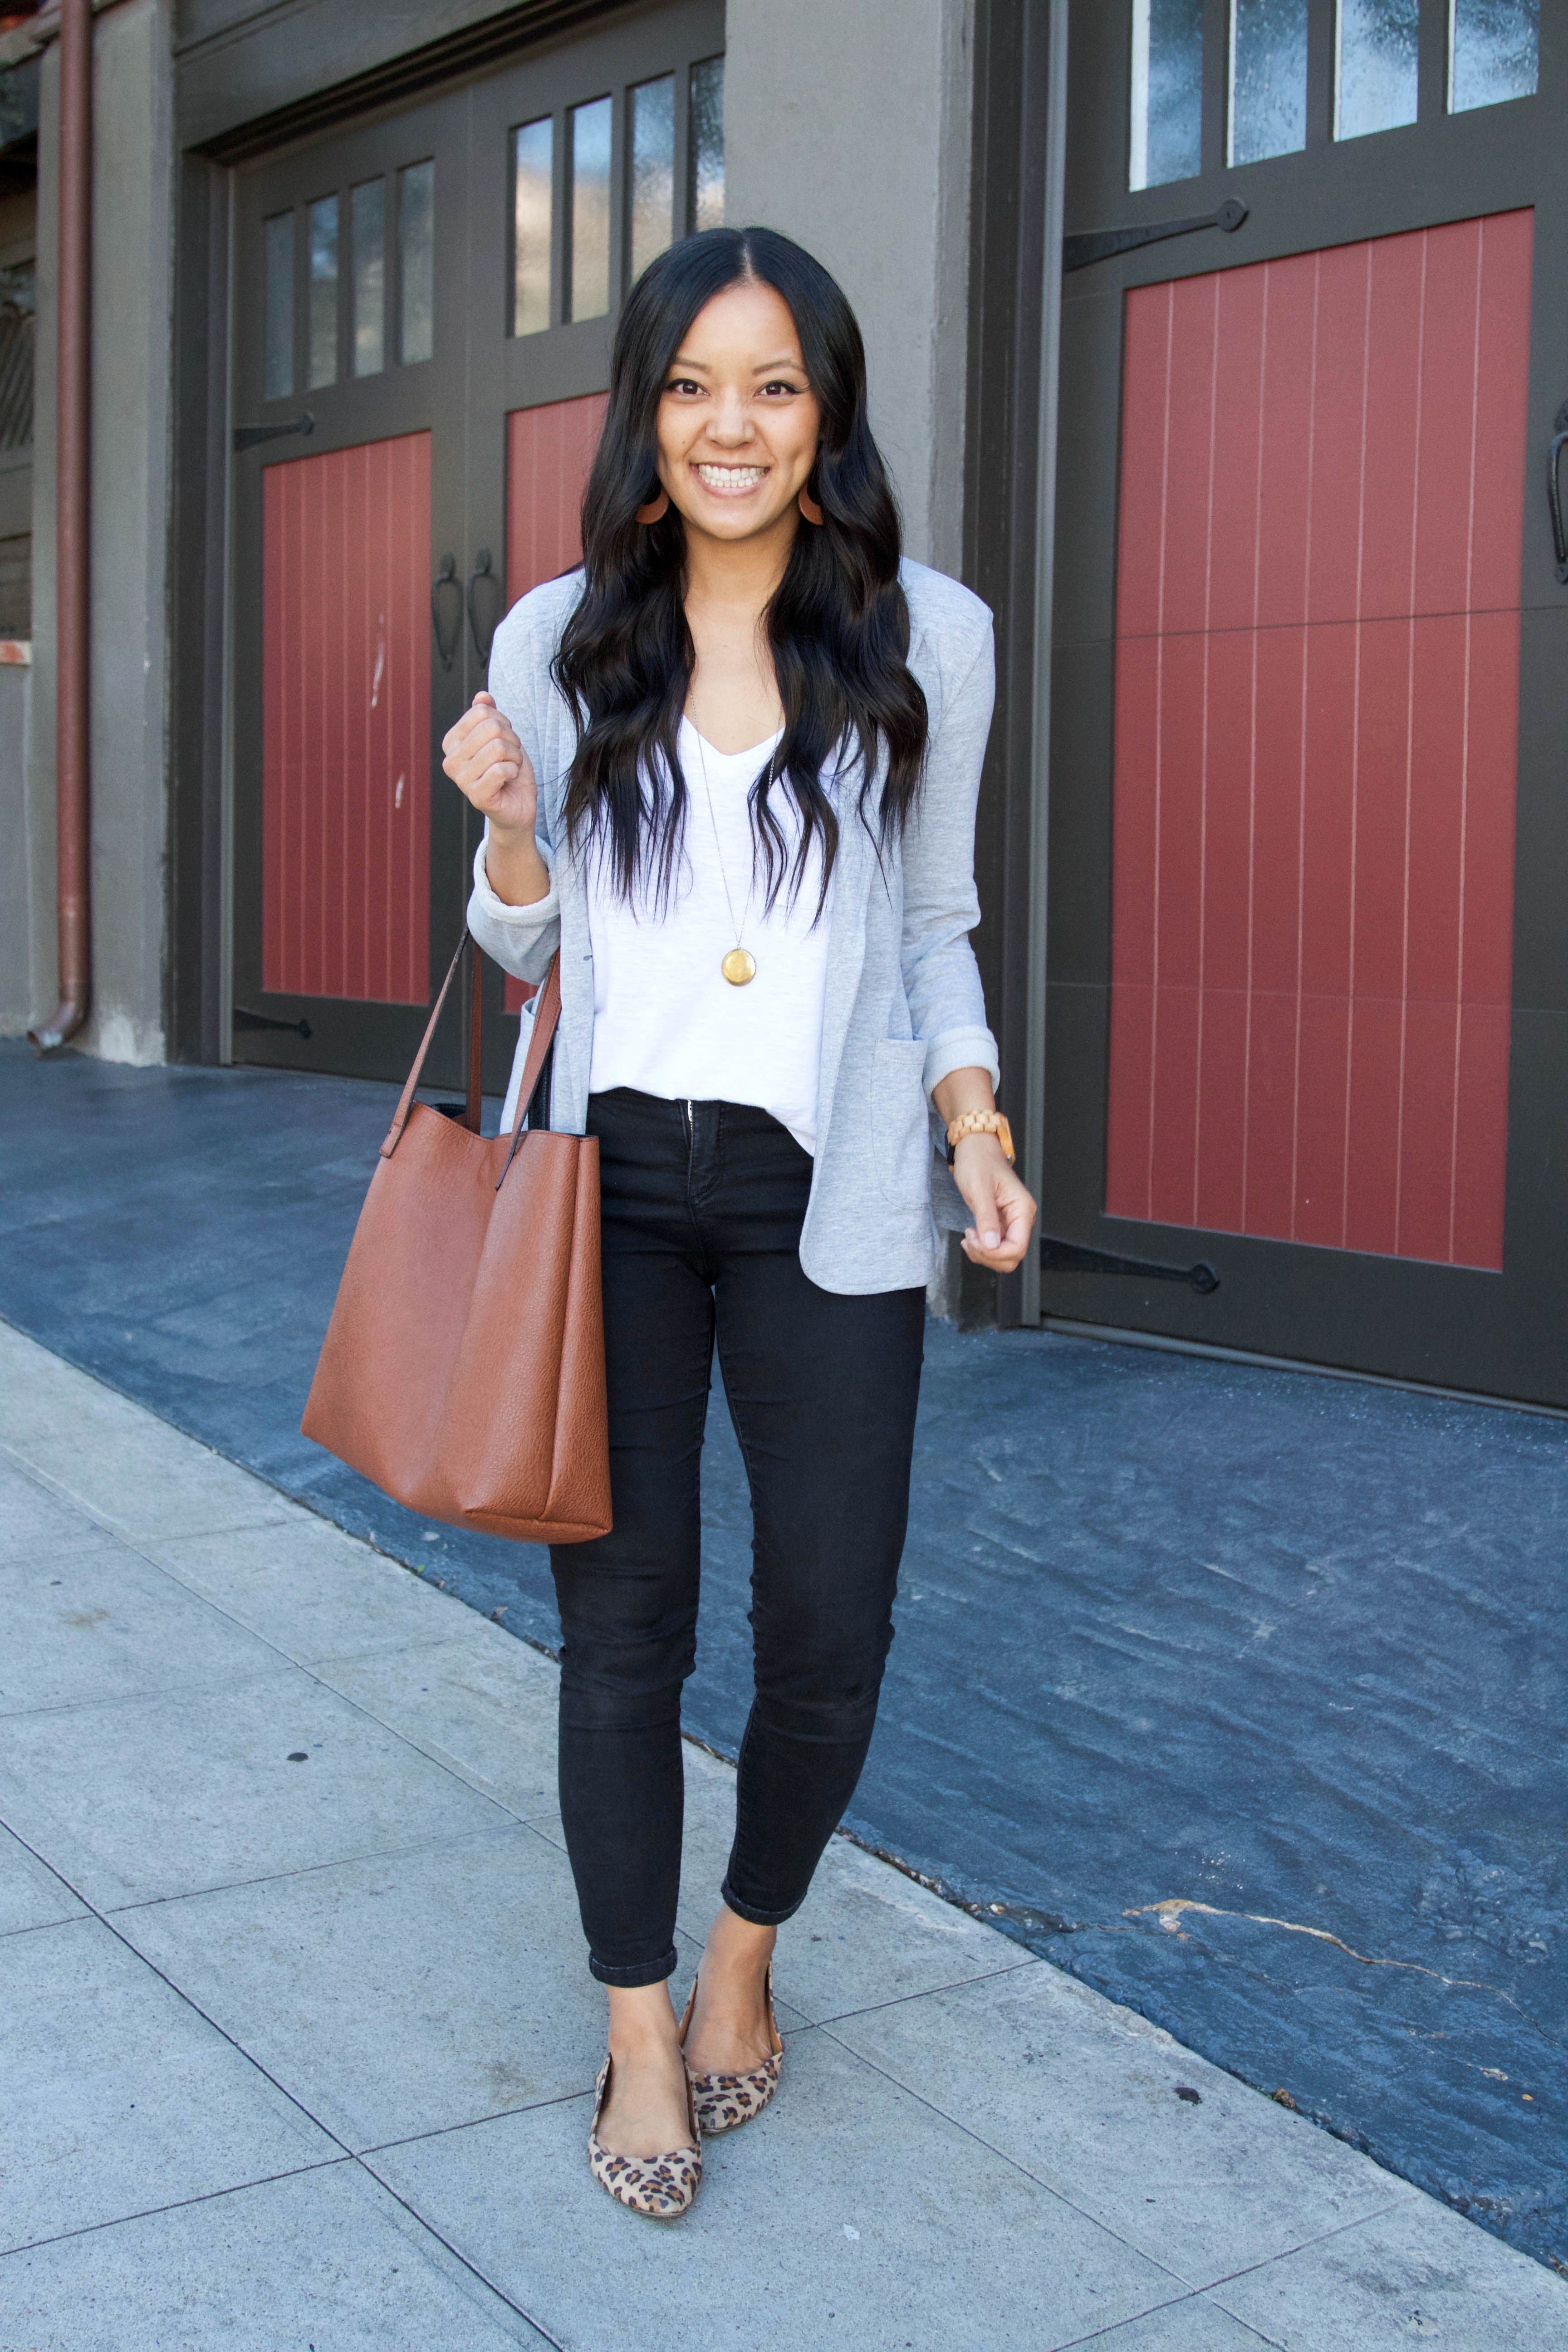 ea83c23a3d Gray Blazer + Leopard Flats + Black jeans + Tote + White Tee